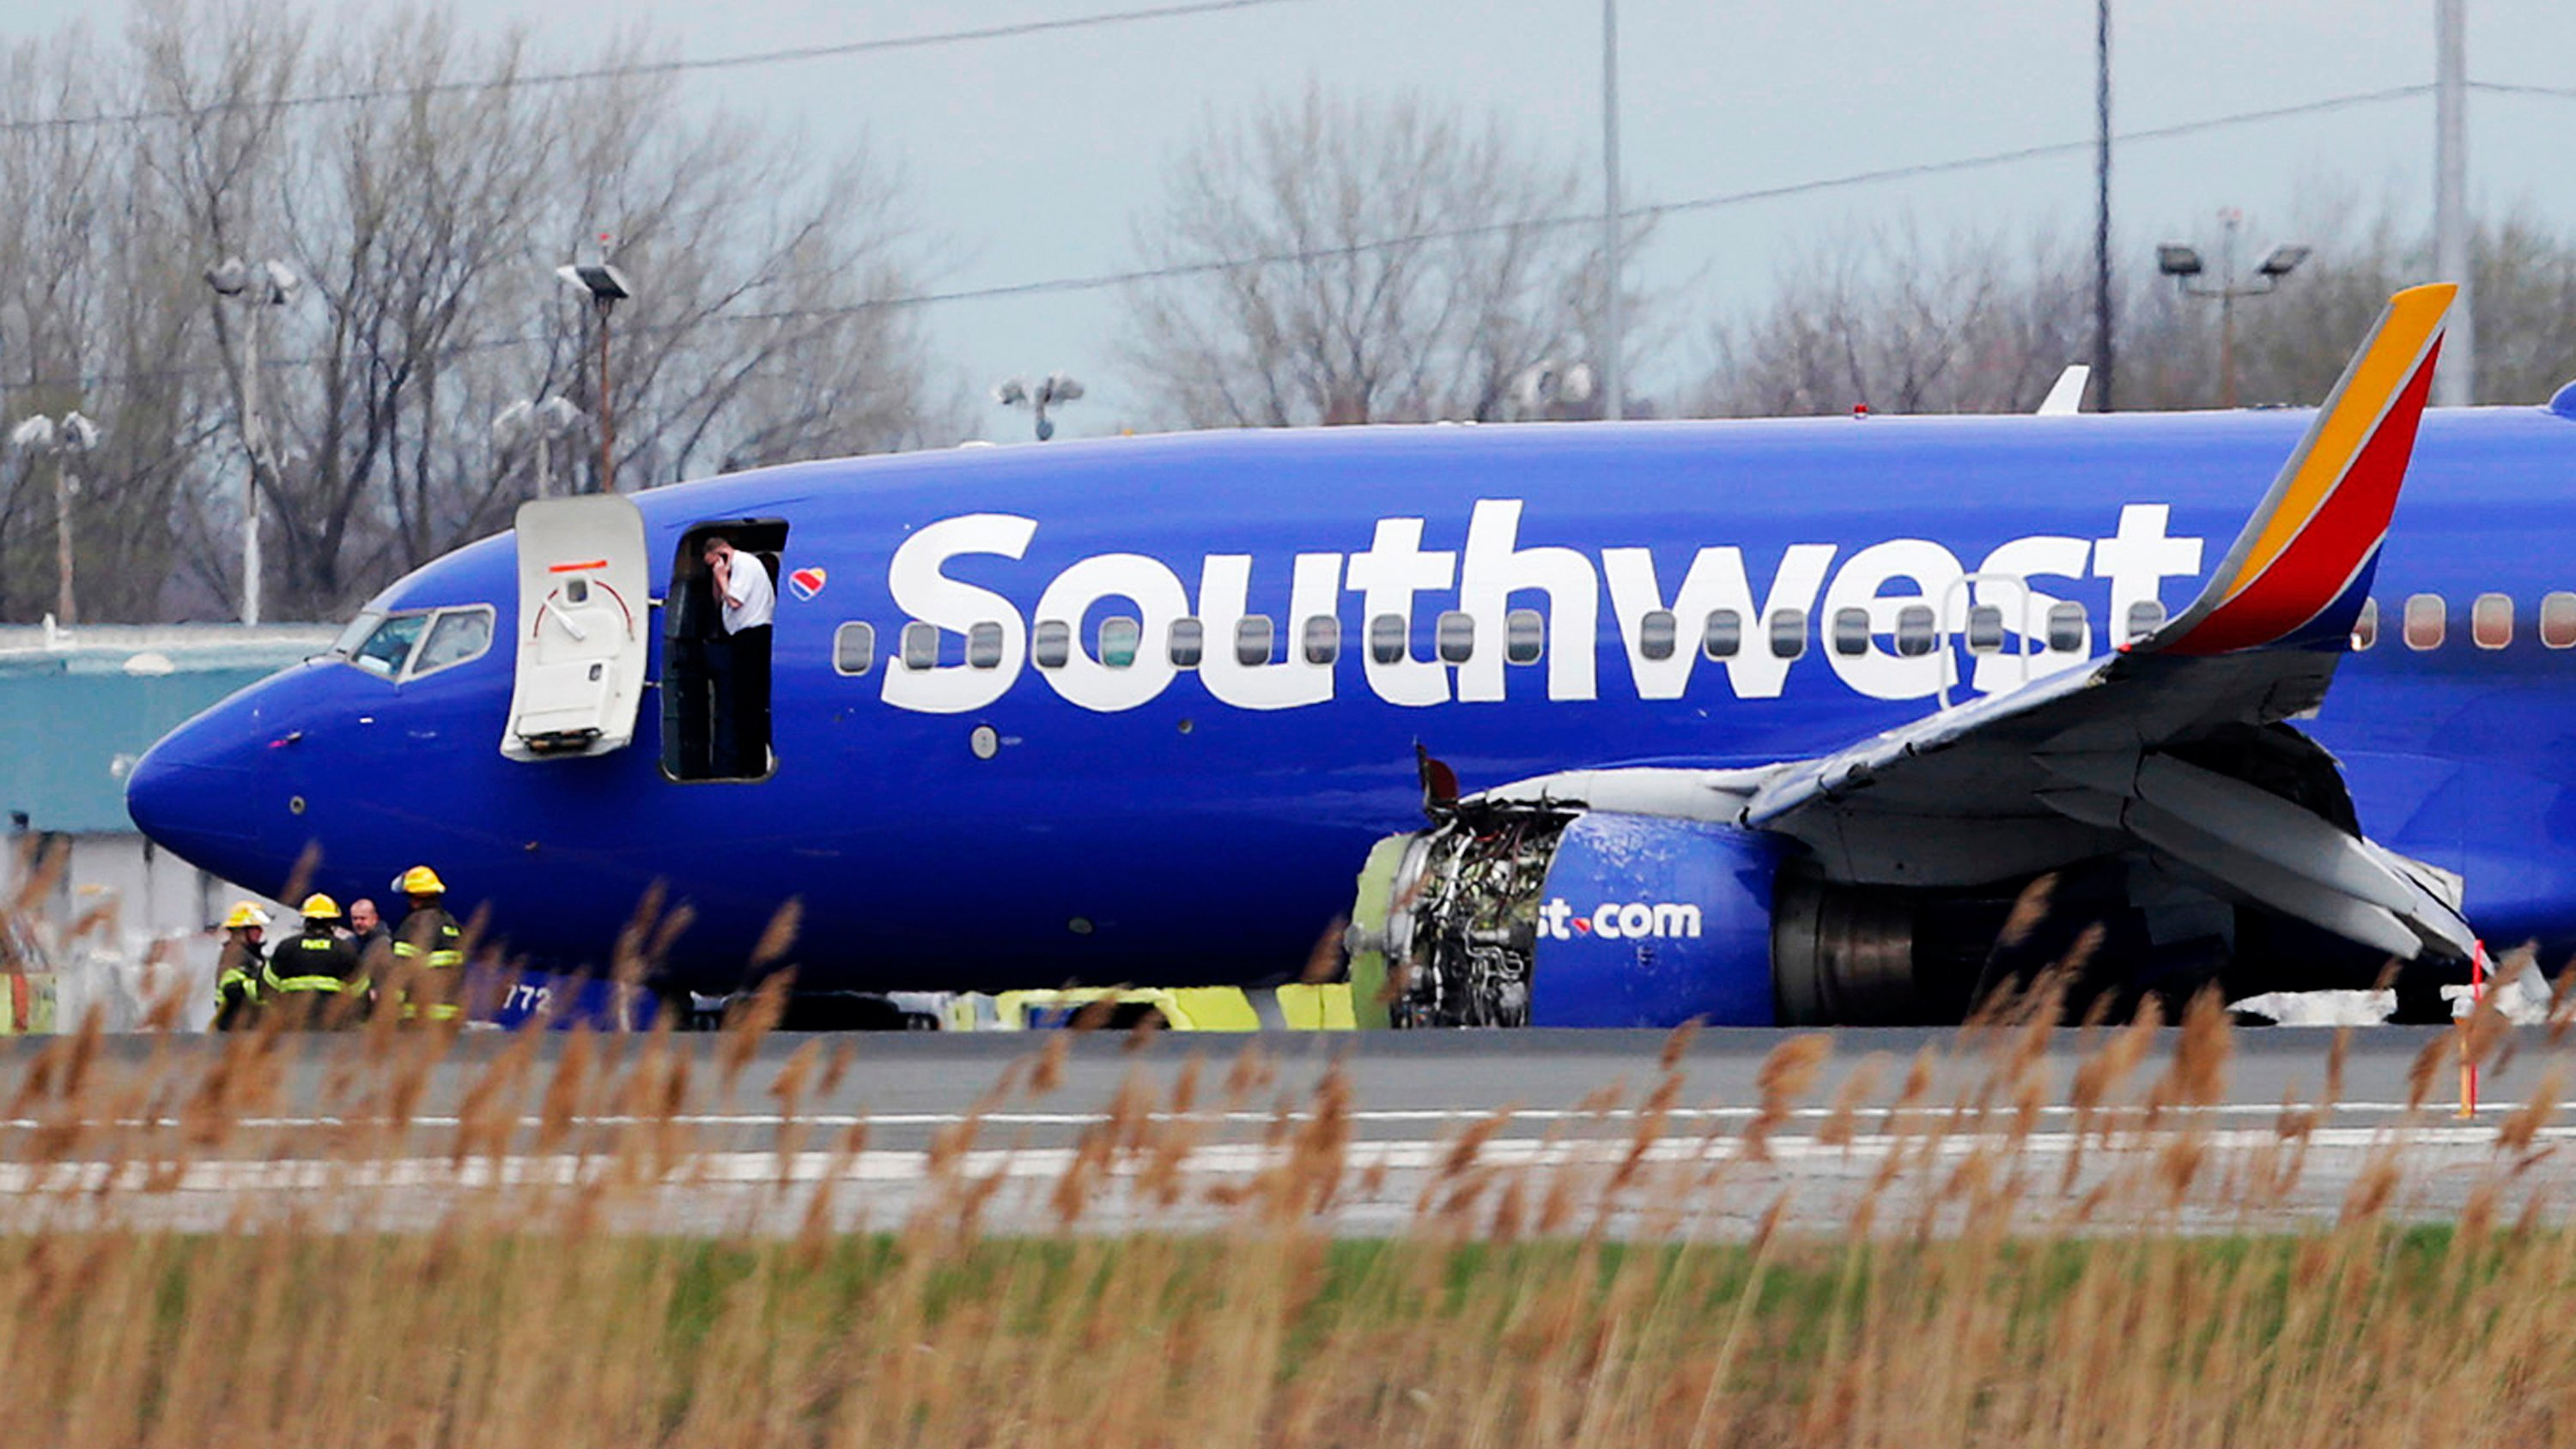 Southwest $5000 Checks Sent to Passengers on Crippled Flight